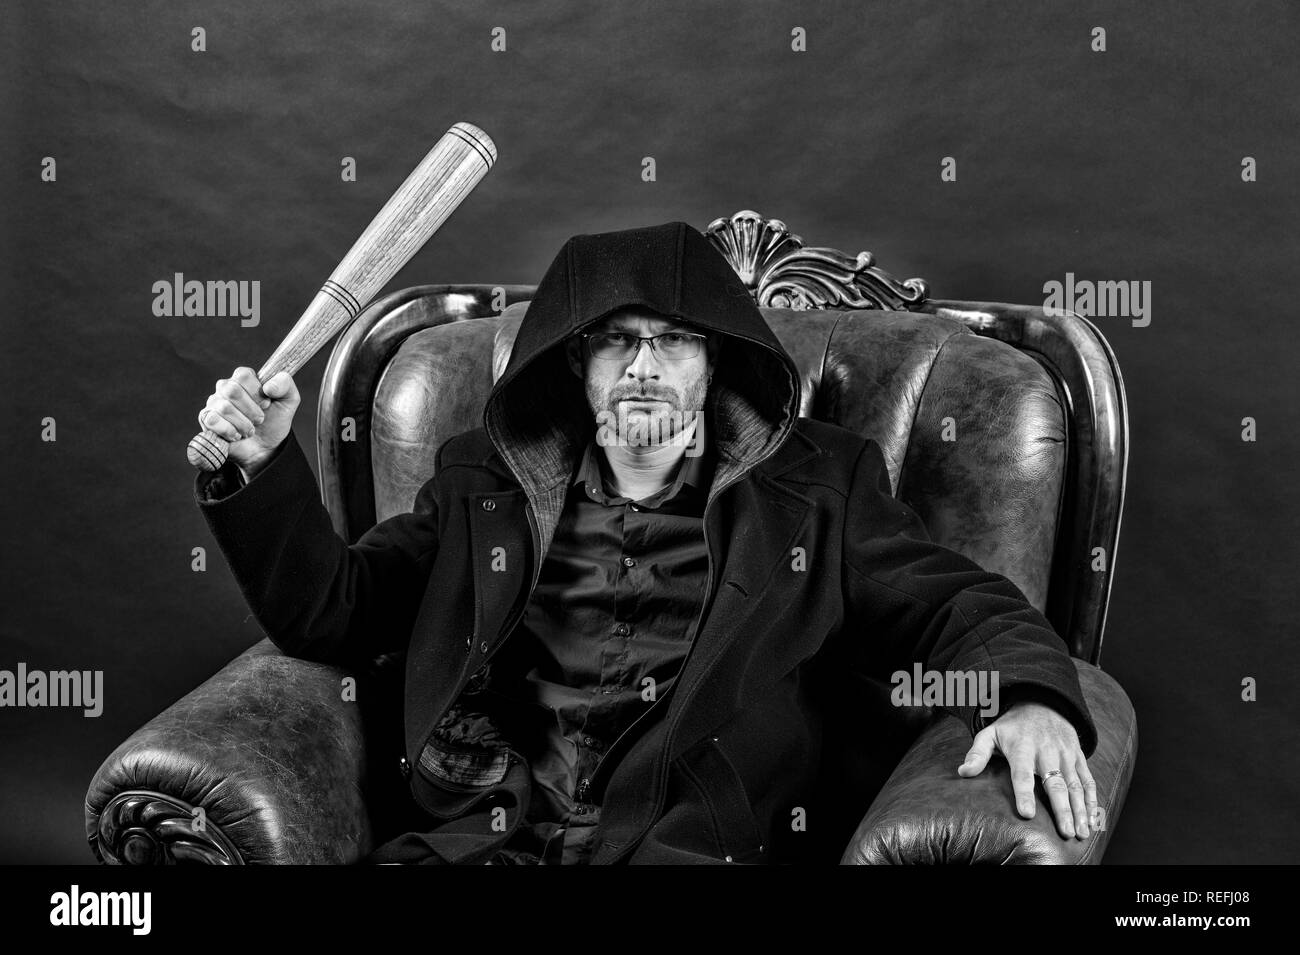 Gangster guy strike with bat weapon. Bearded man with baseball bat sit in armchair. Criminal wear hood in coat. Crime or aggression and violence concept, black and white. - Stock Image